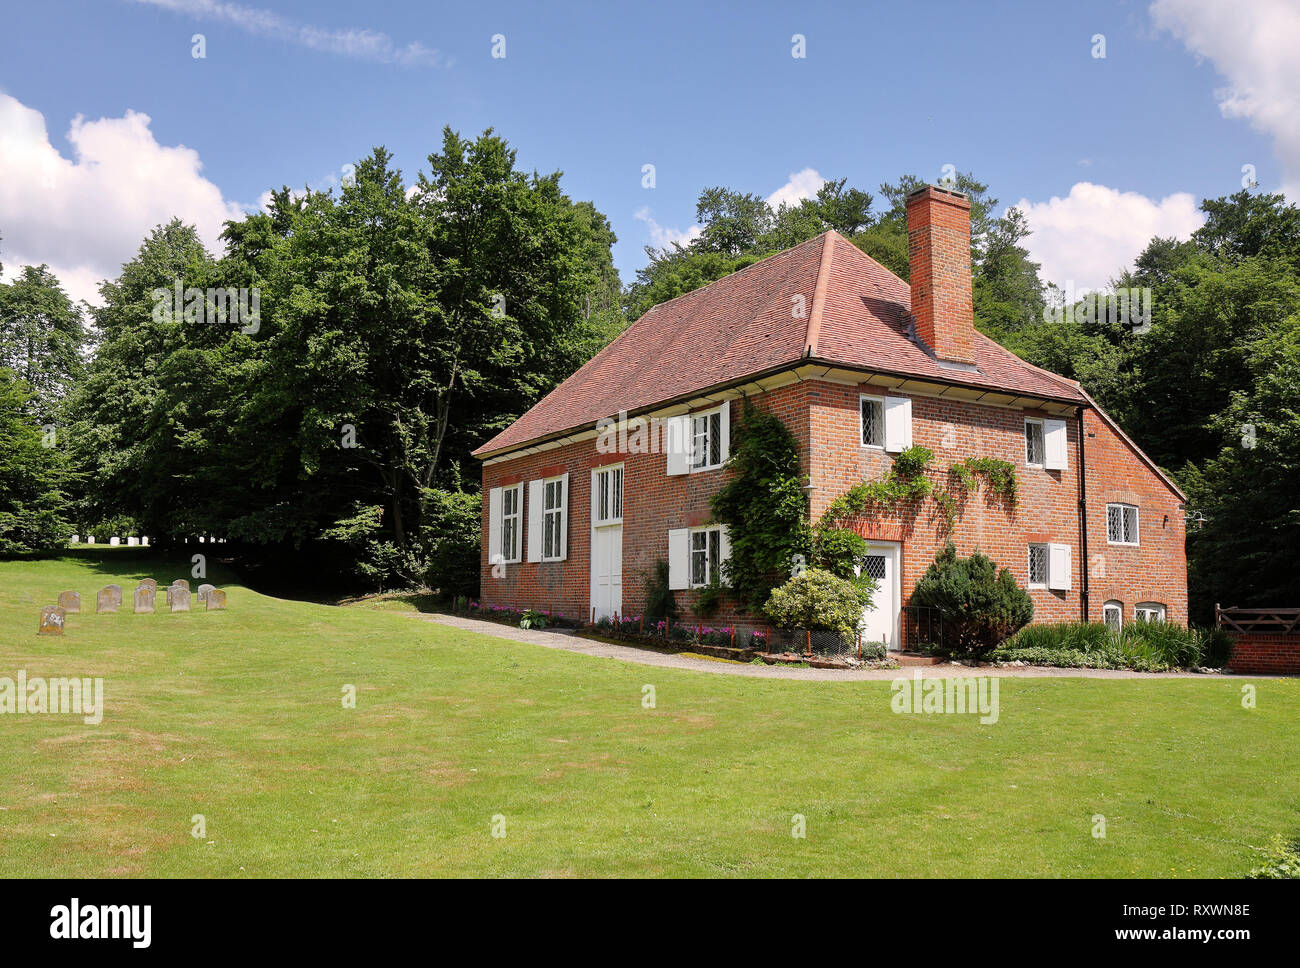 Quaker Burial Ground and meeting house in Jordans, England, showing the Graves of William Penn and his Family - Stock Image